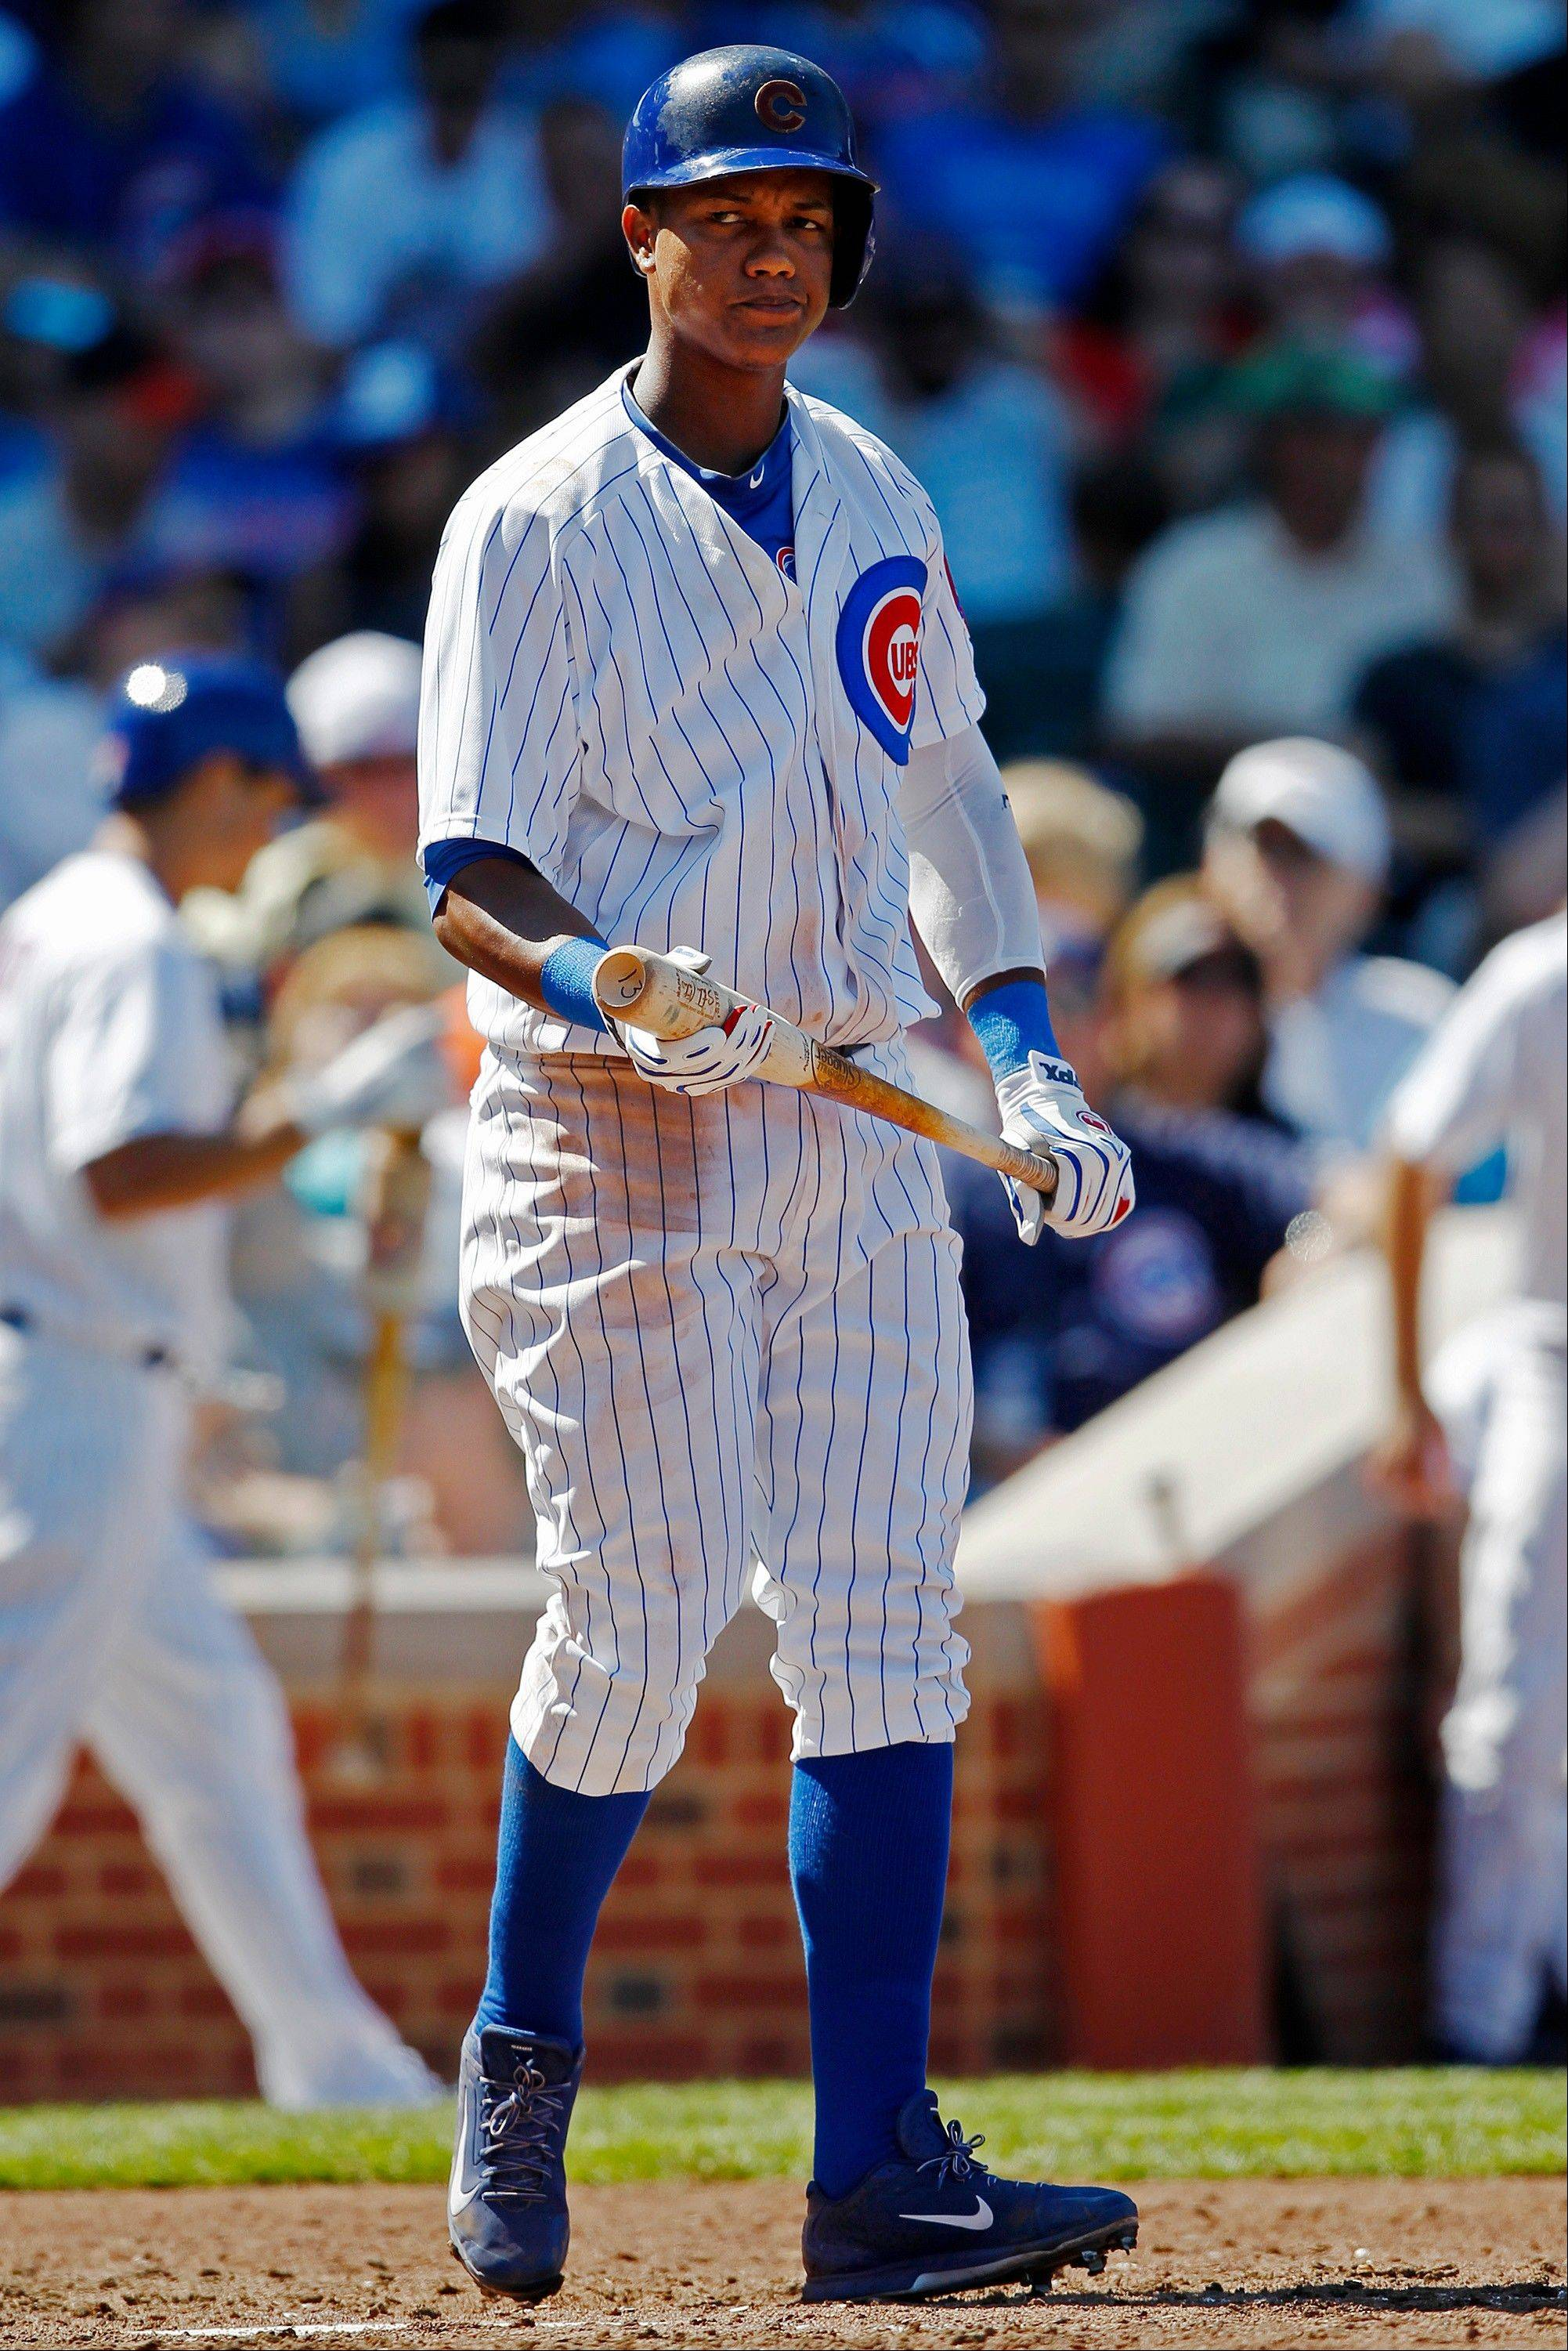 Cubs shortstop Starlin Castro, here reacting after striking out Sunday in the fifth inning, thanked manager Dale Sveum for putting him back the lineup the day after being taken out for a mental miscue.